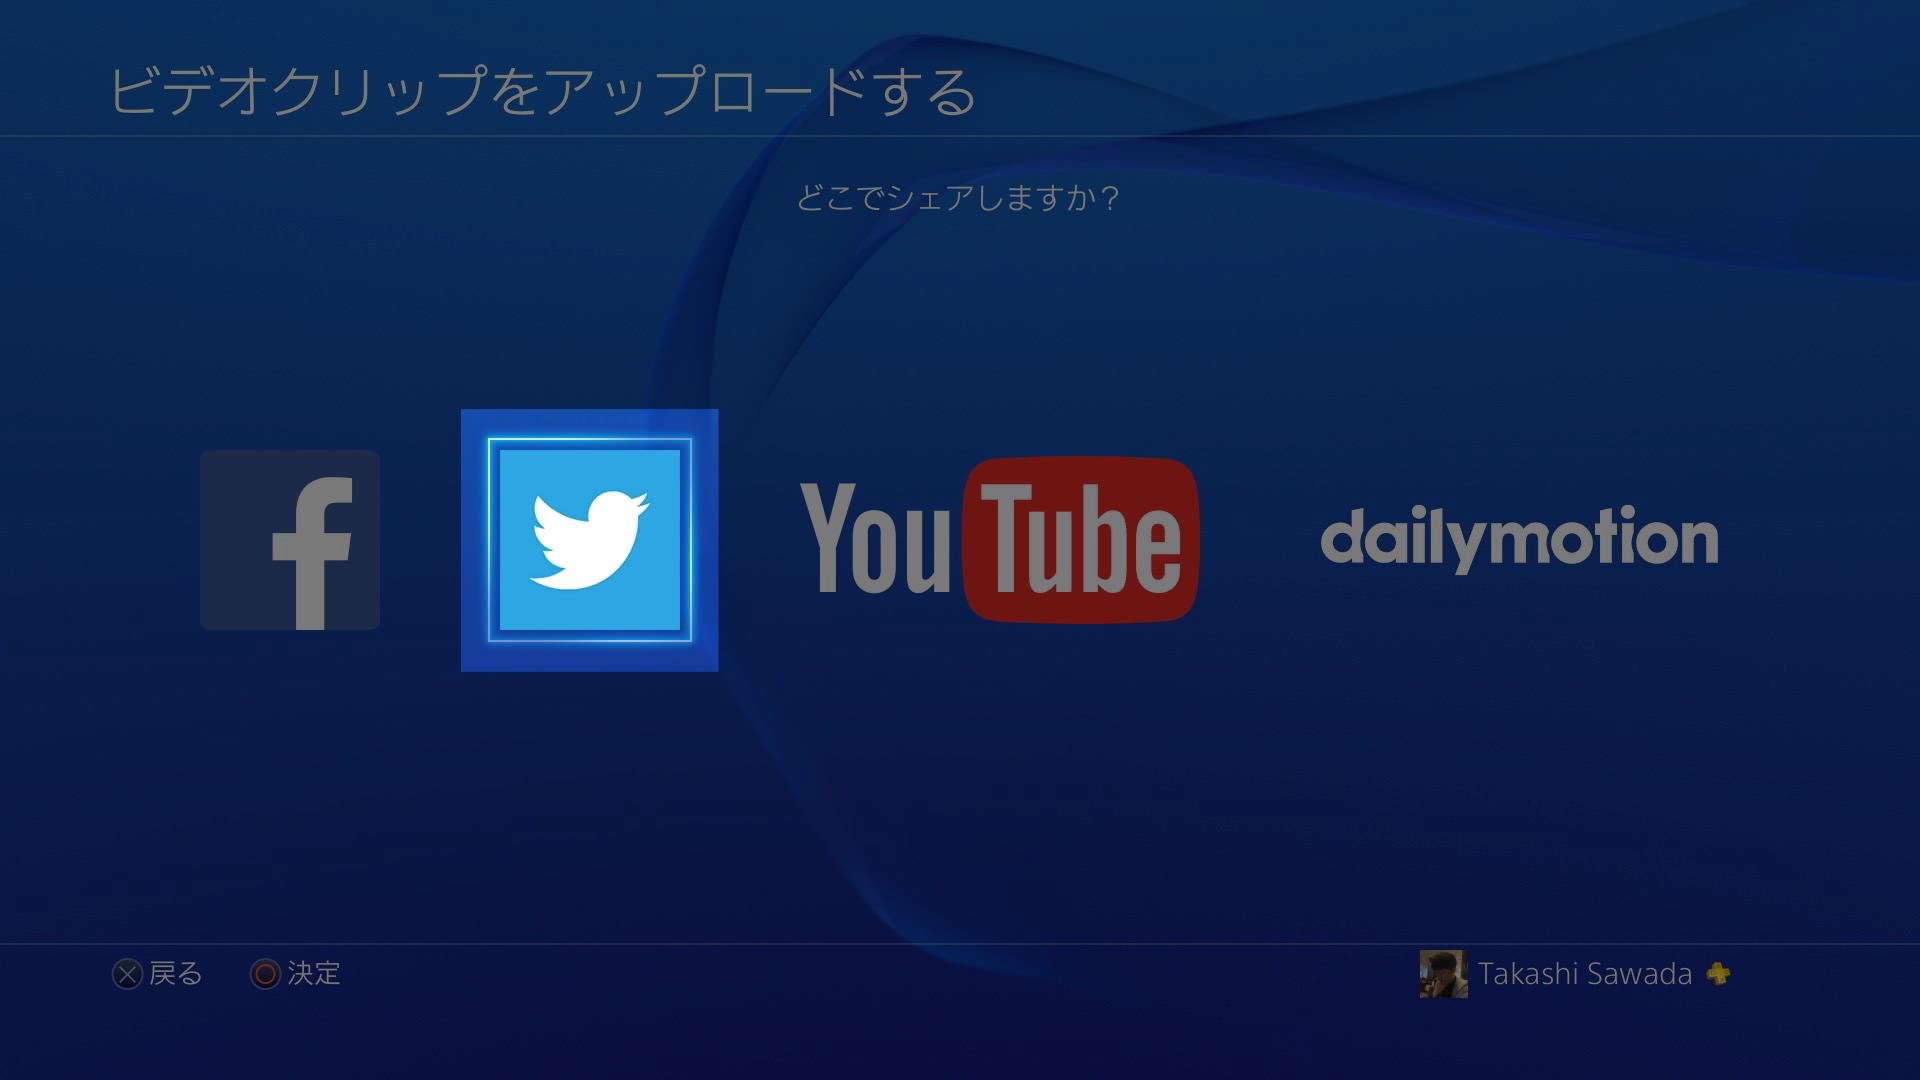 How to upload video for twitter from playstation 4 4